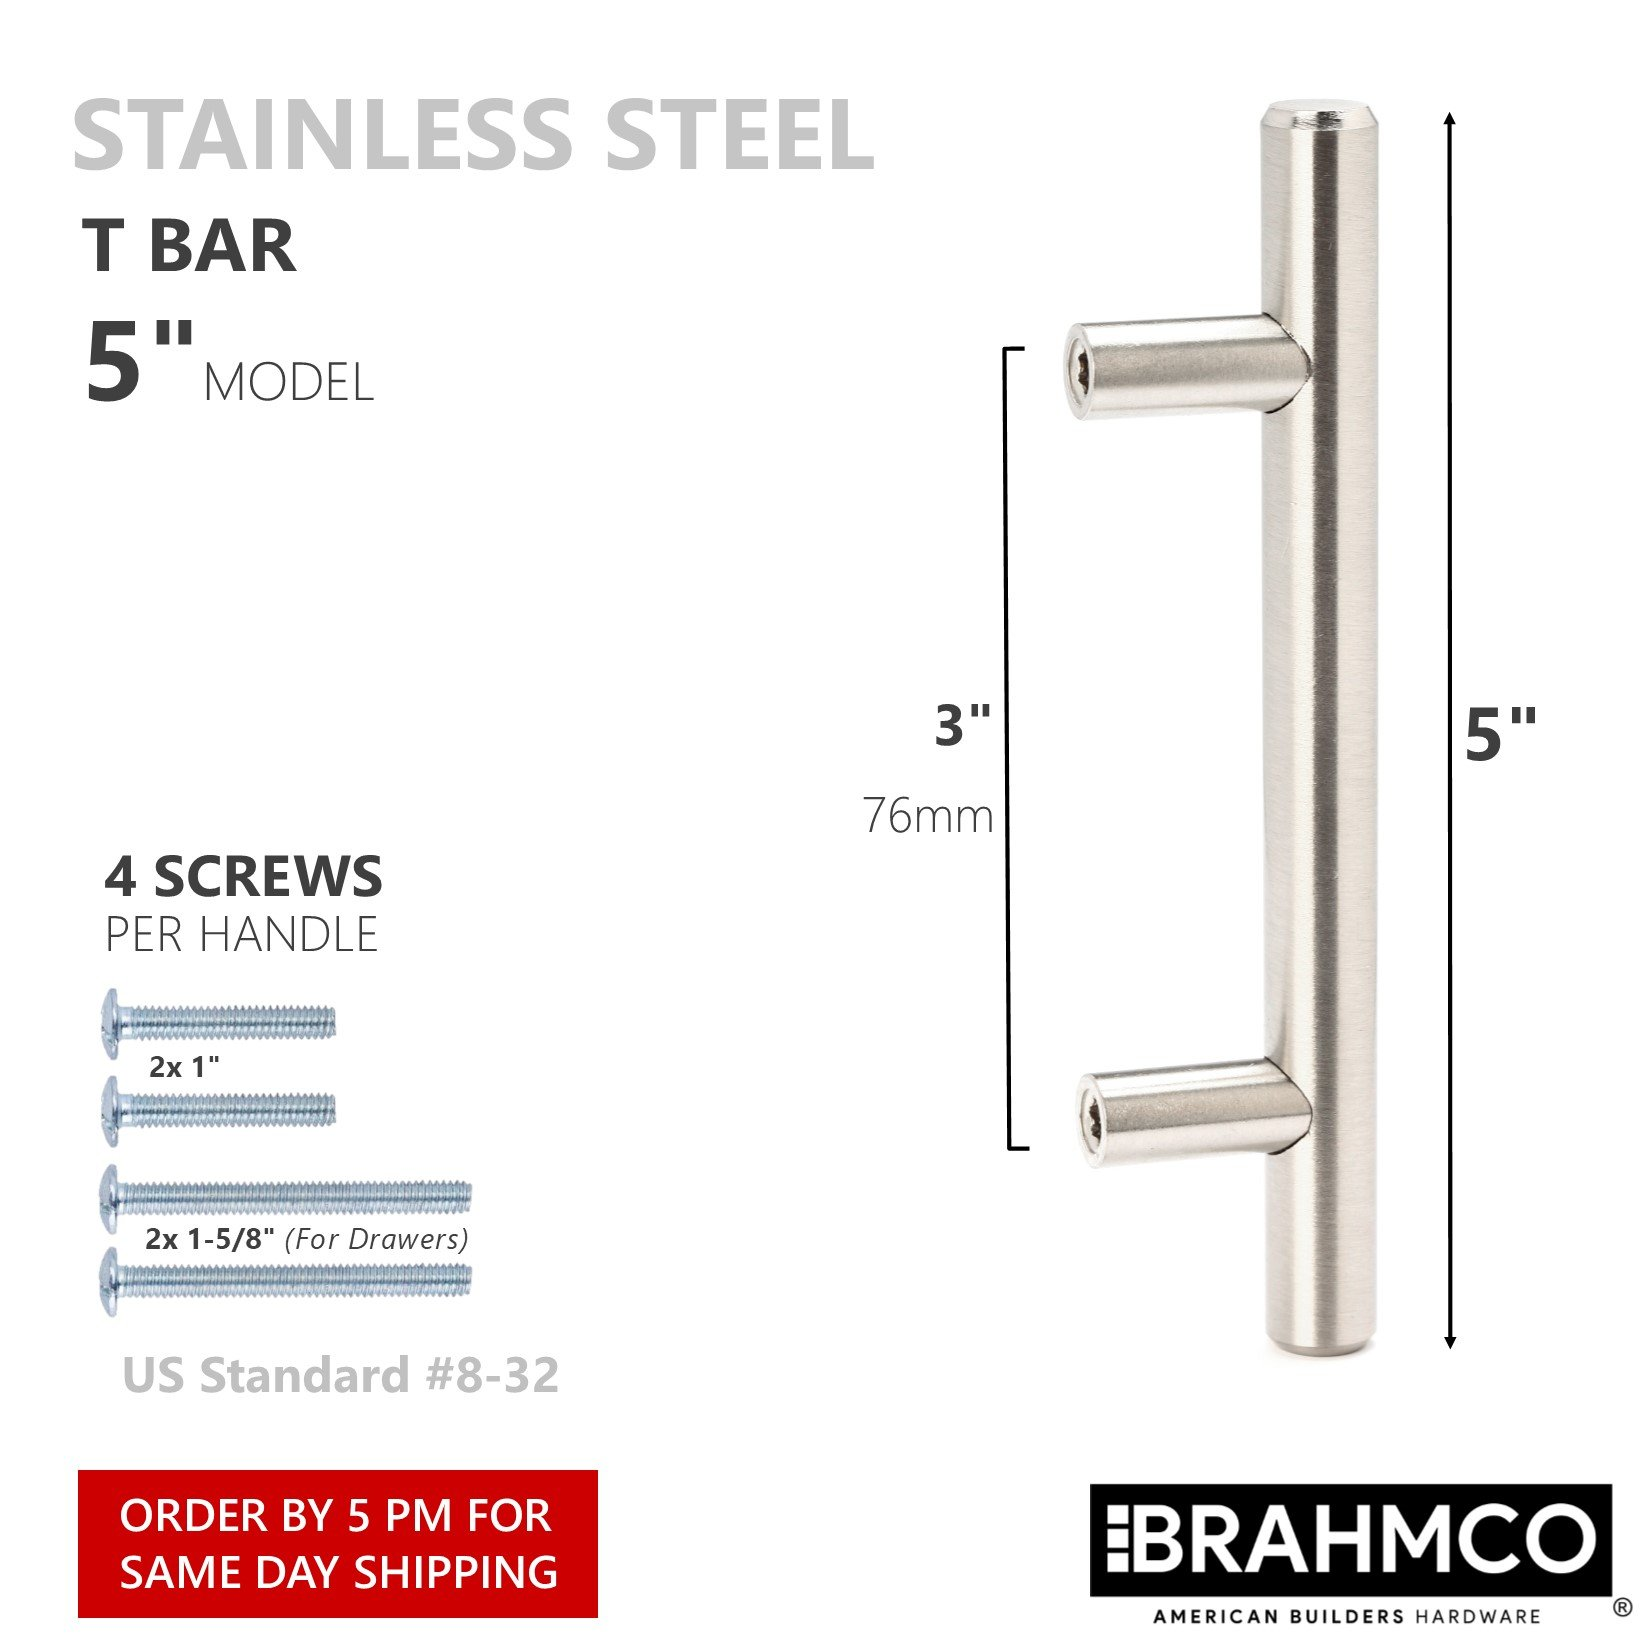 30 Pack | 5'' Stainless Steel T Bar Cabinet Pulls: 3 Inch Hole Spacing | Brahmco 180-5 | Modern Euro Style Brushed Satin Nickel Finish Kitchen Cabinet Handles Hardware/Drawer by Brahmco (Image #4)